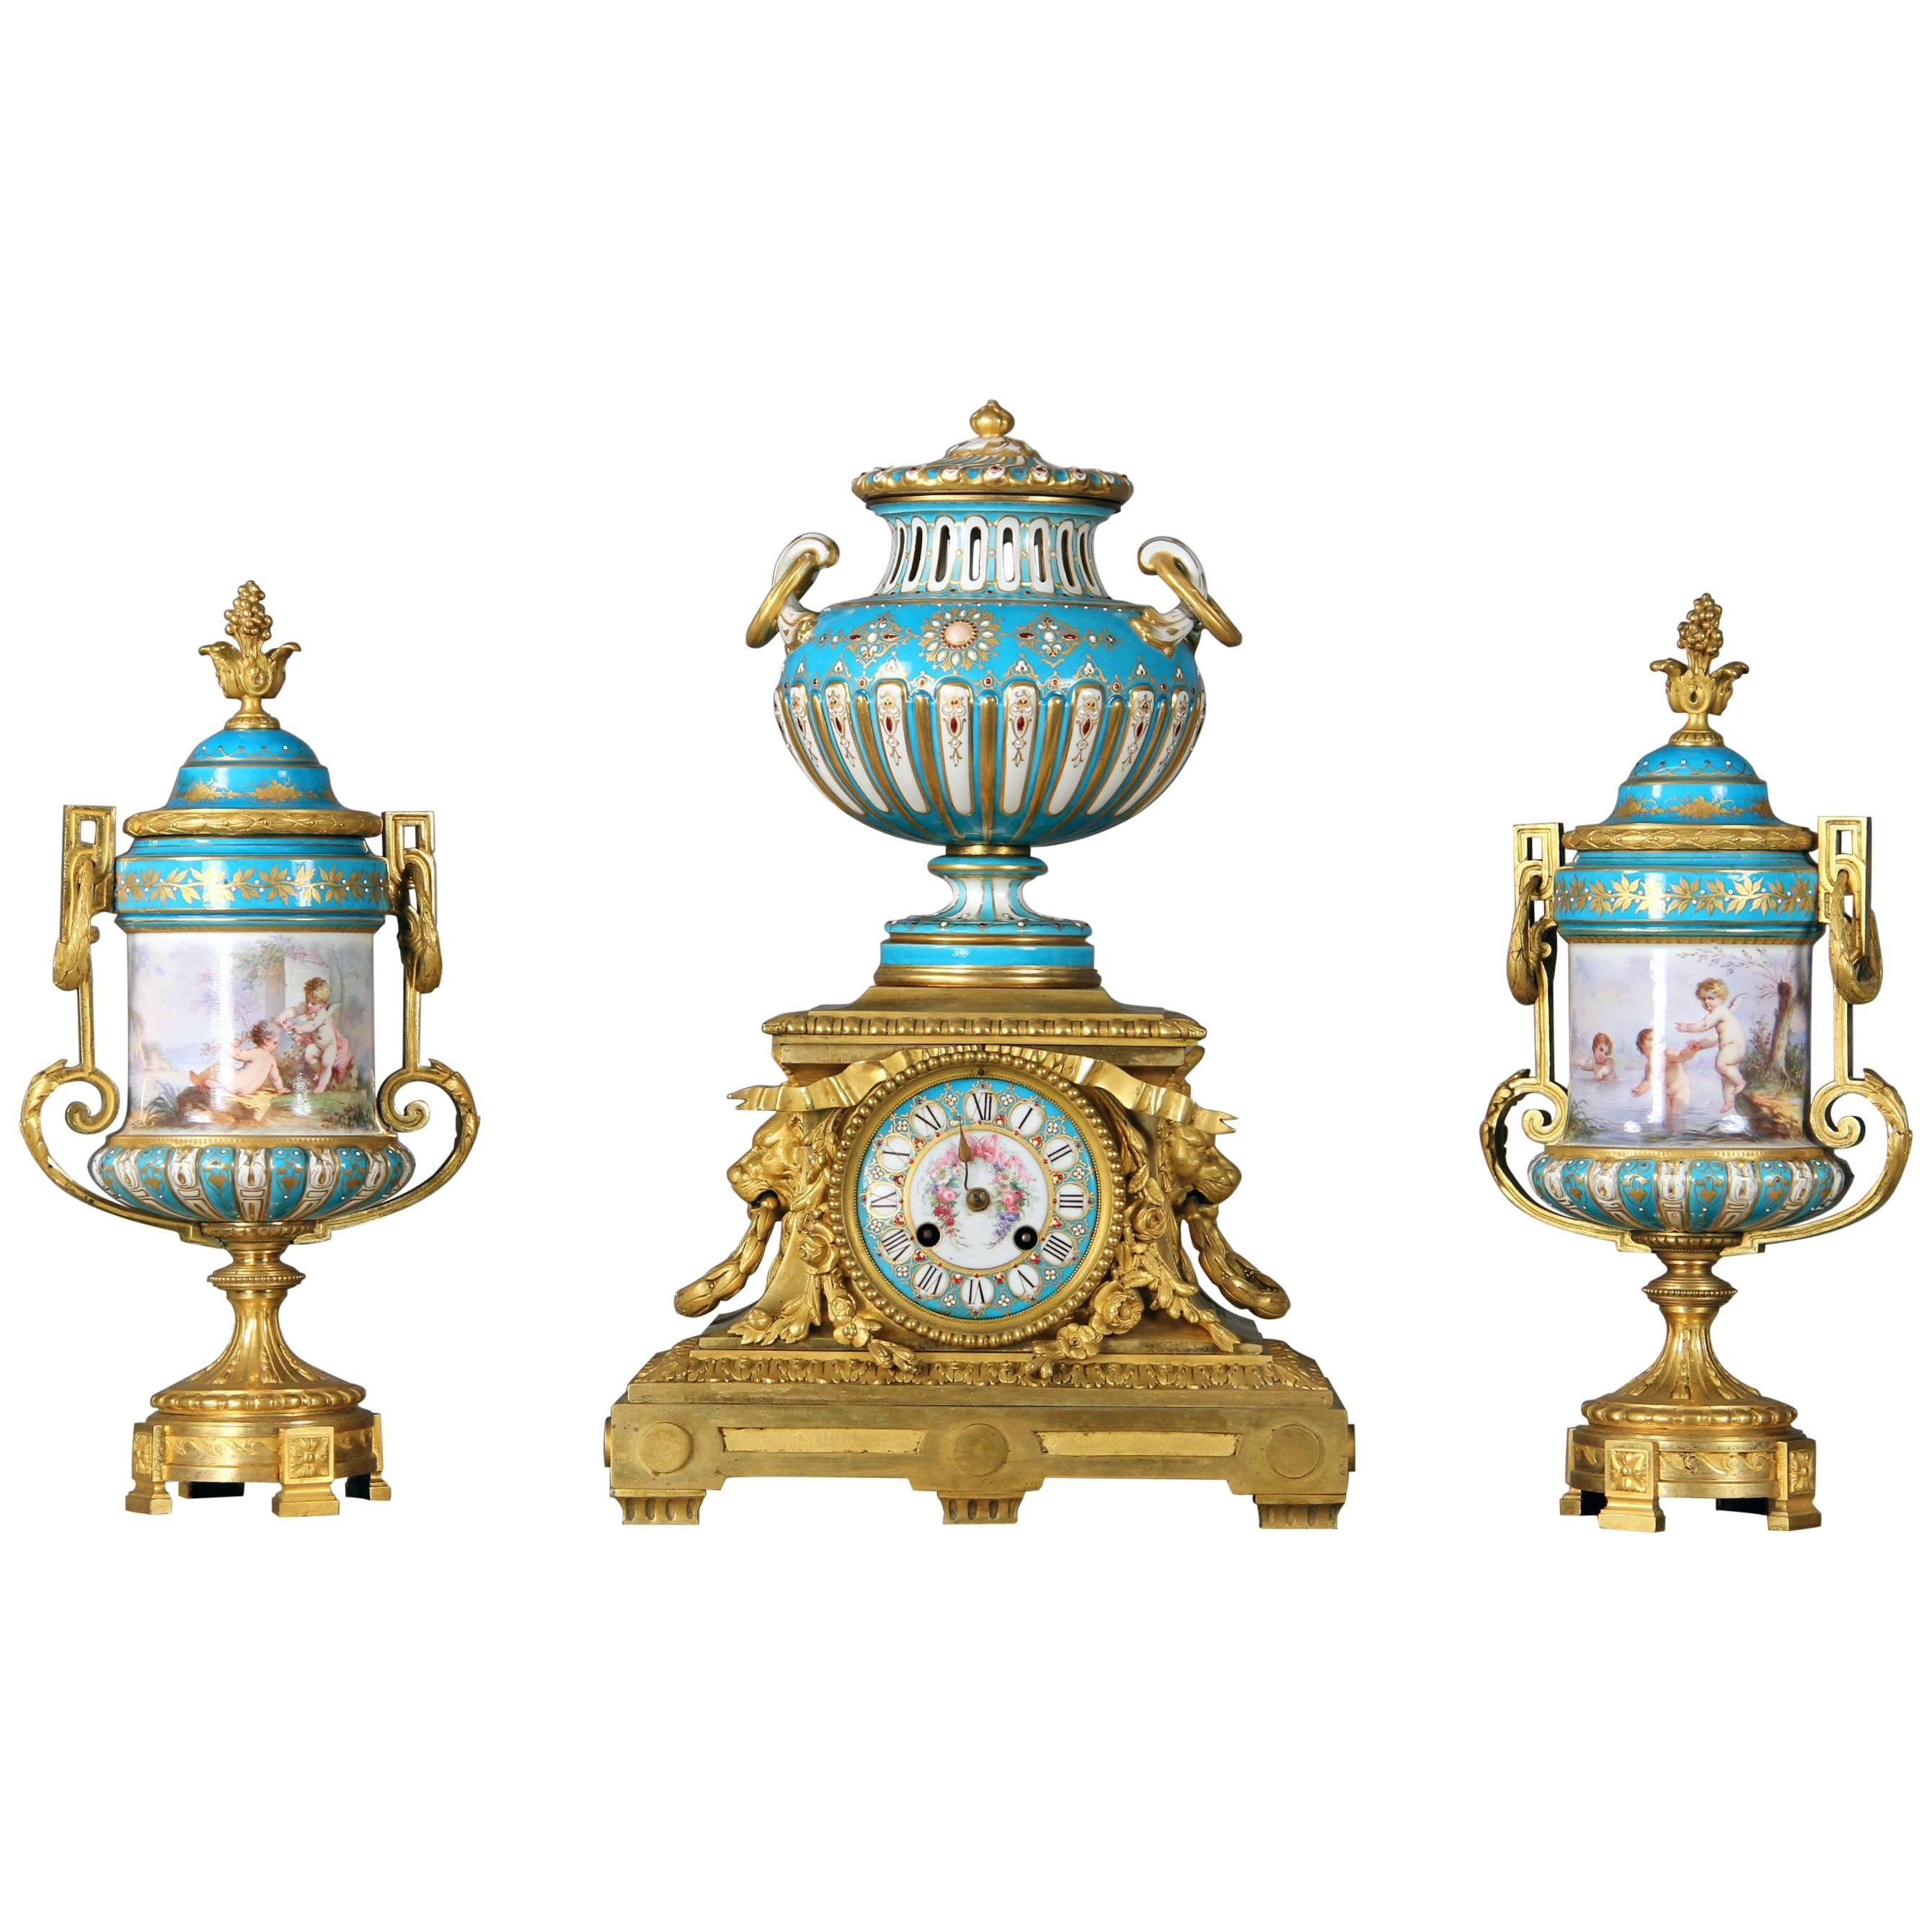 Late 19th Century Gilt Bronze and Turquoise Sèvres Porcelain 'Jeweled' Clock Set